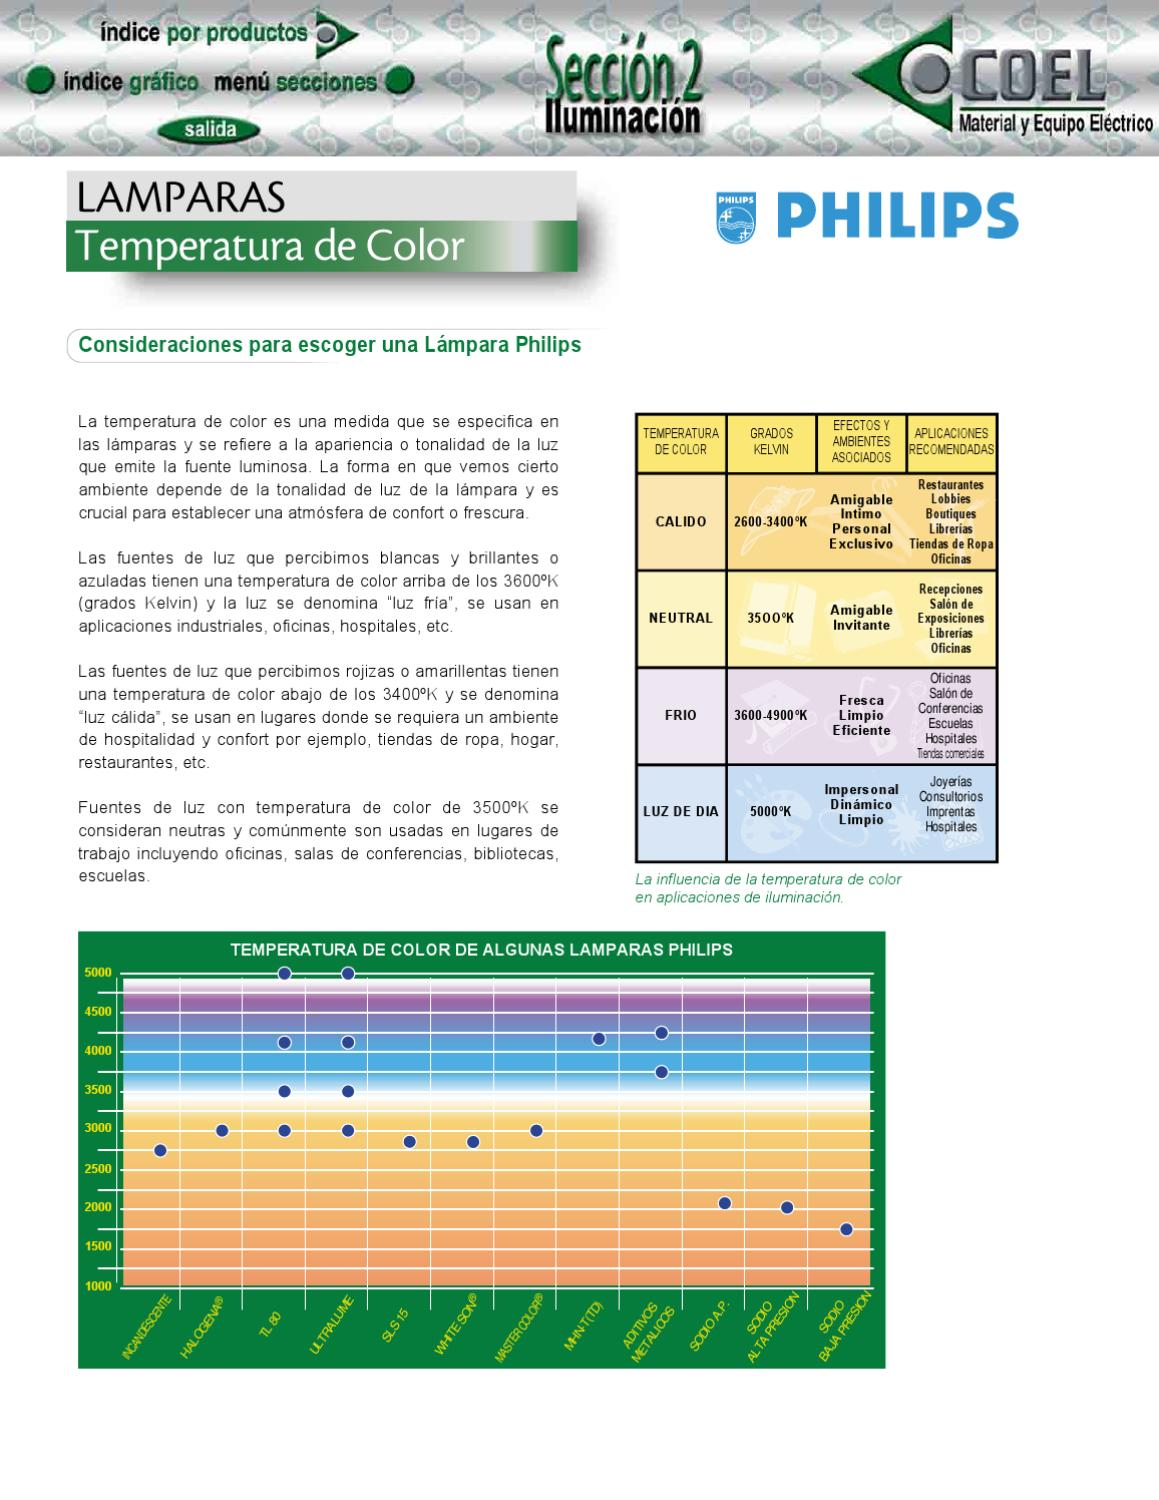 Catalogo Lamparas Philips Catalogo Iluminacion By Web Lei Issuu